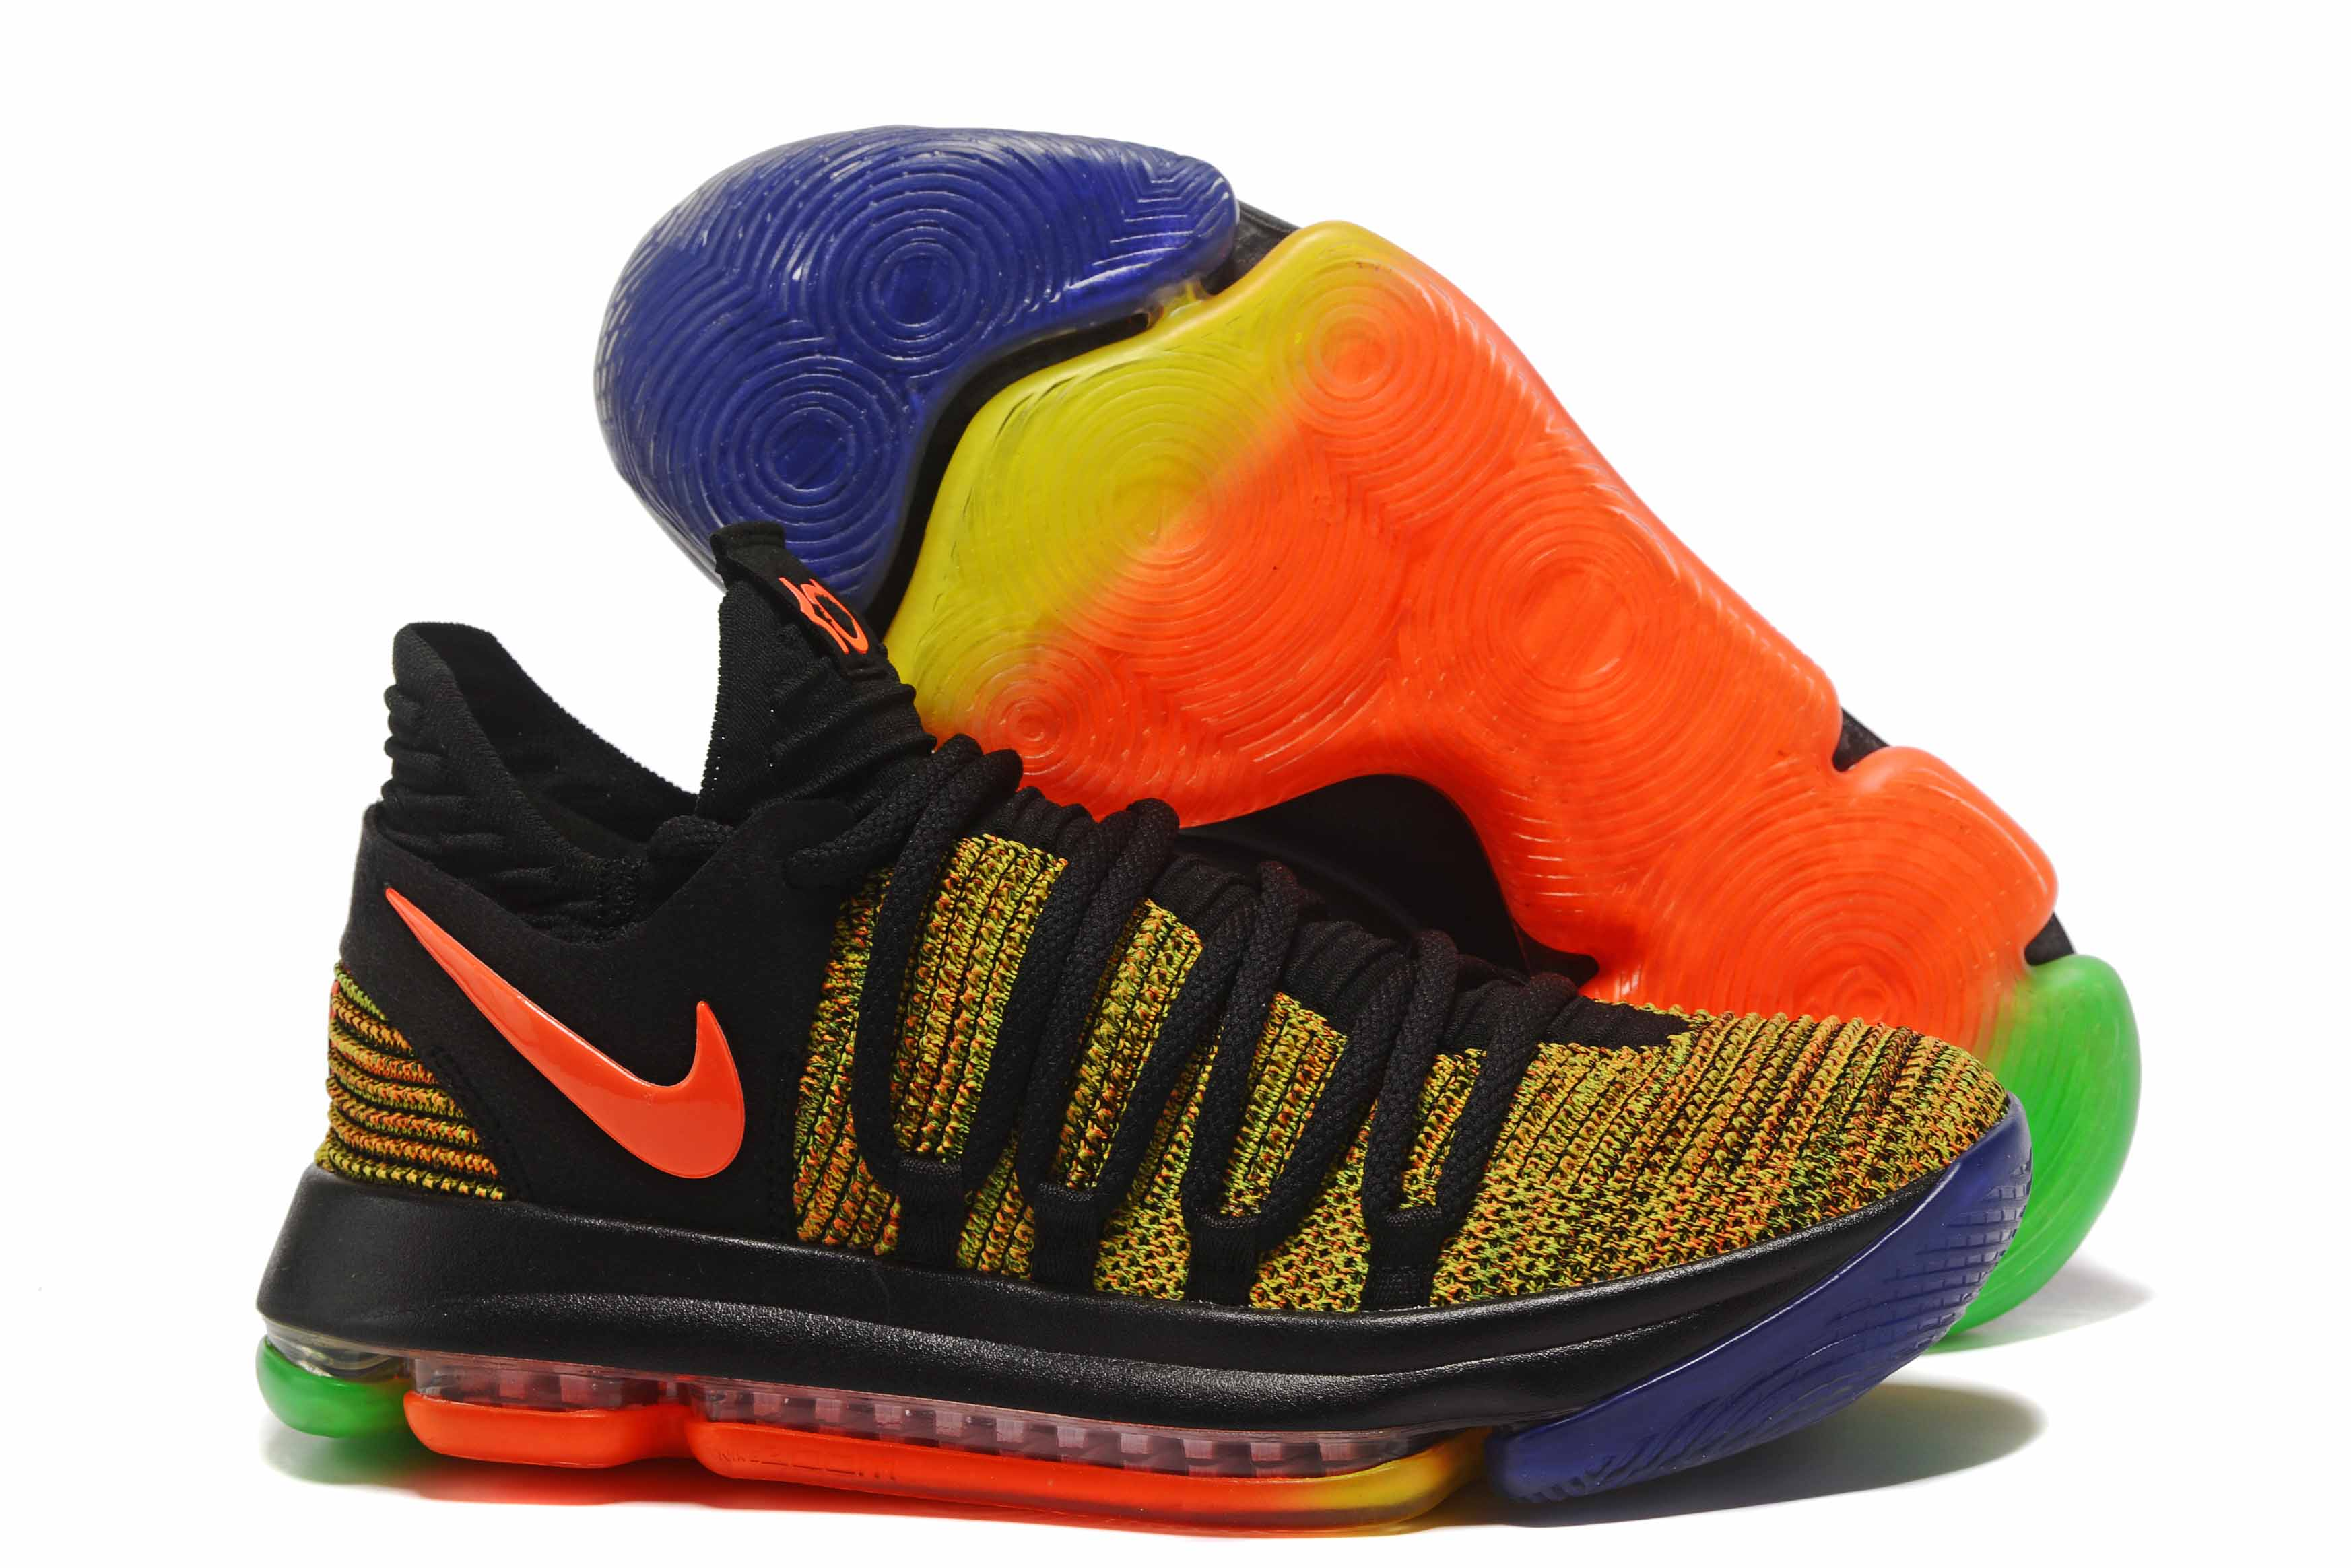 Wholesale Cheap Nike KD 10 EYBL Peach Jam Multi-Color For Sale - www.wholesaleflyknit.com